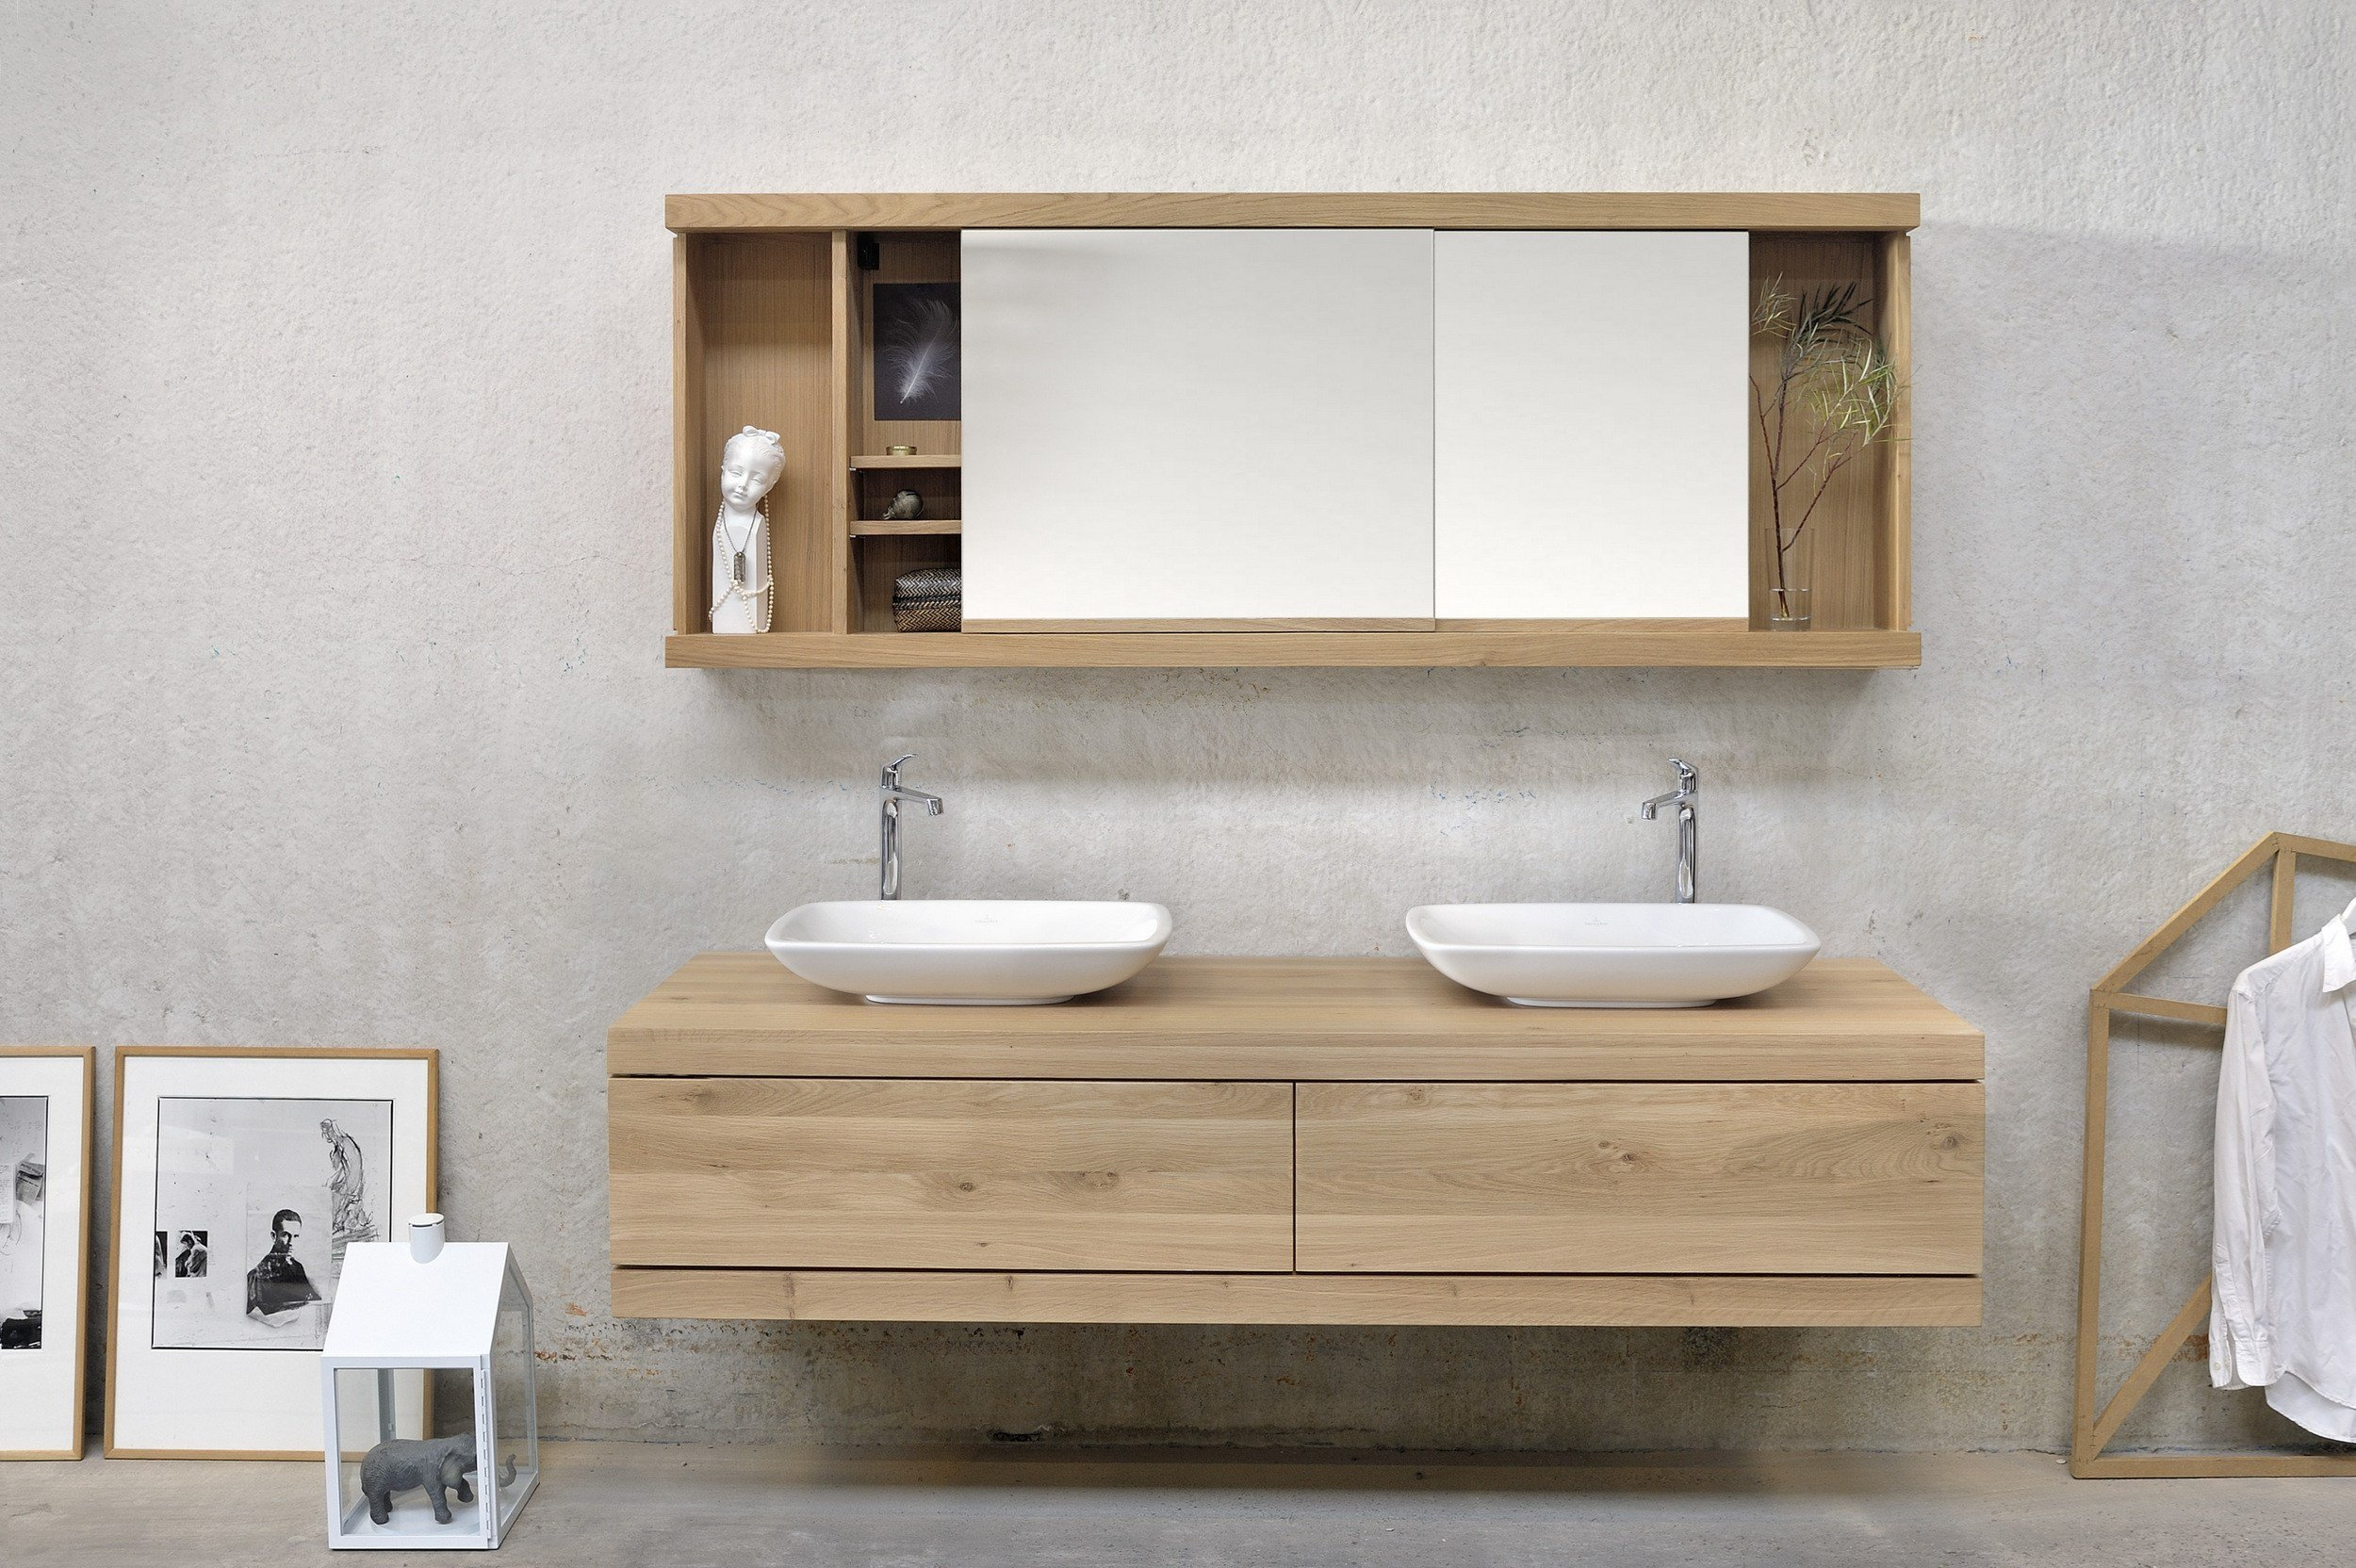 Awesome Mobili Bagno Legno Massello Ideas - Skilifts.us - skilifts.us